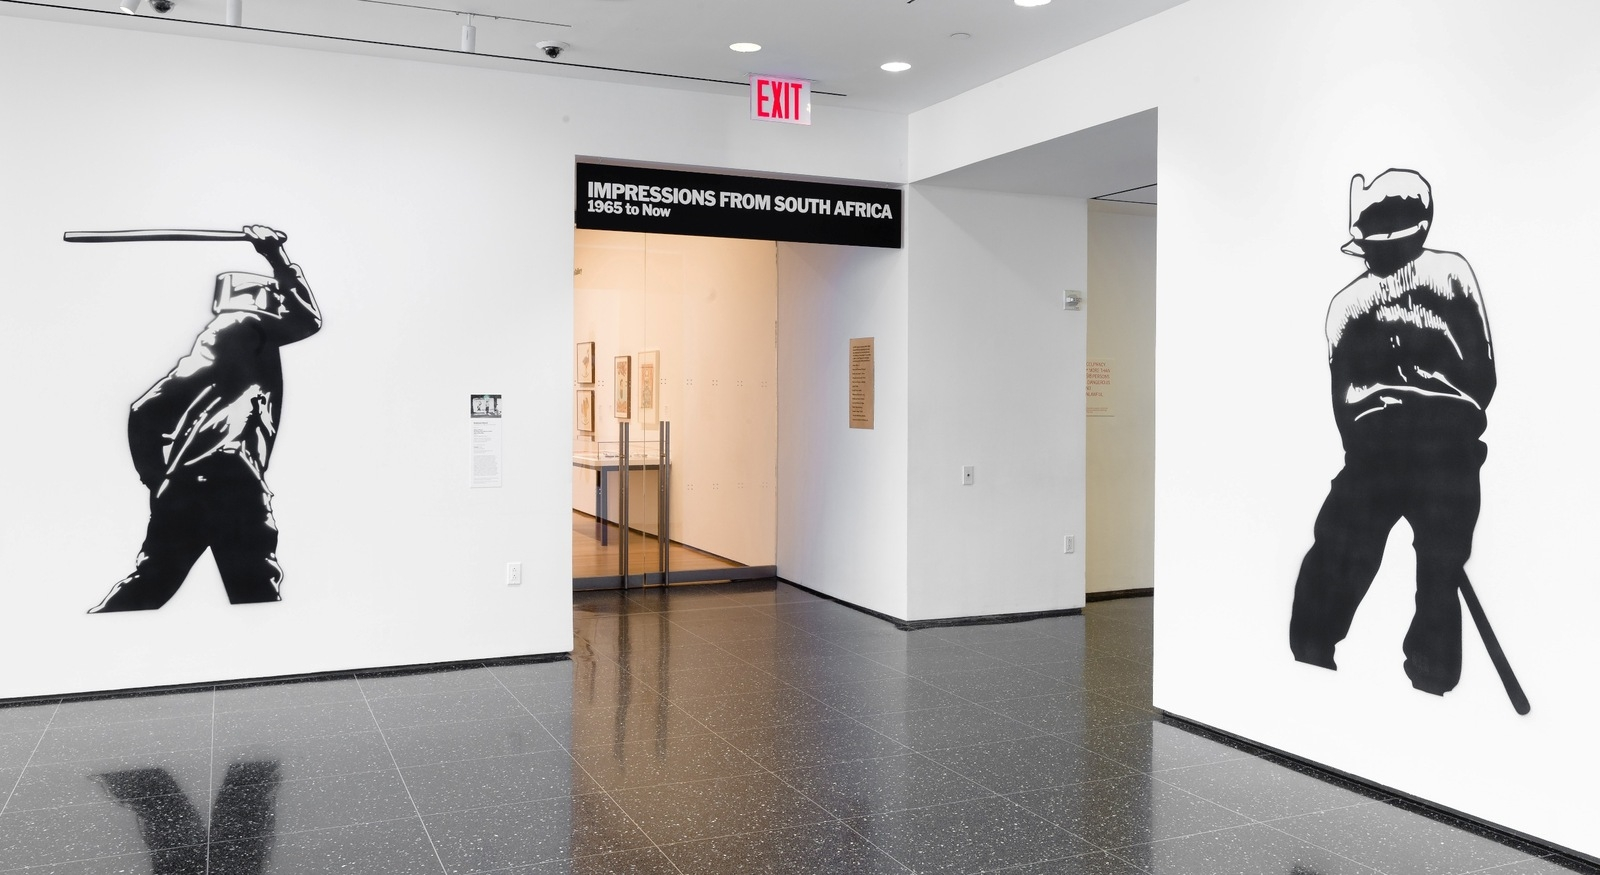 Installation view at MoMA. Untitled. 2008 image